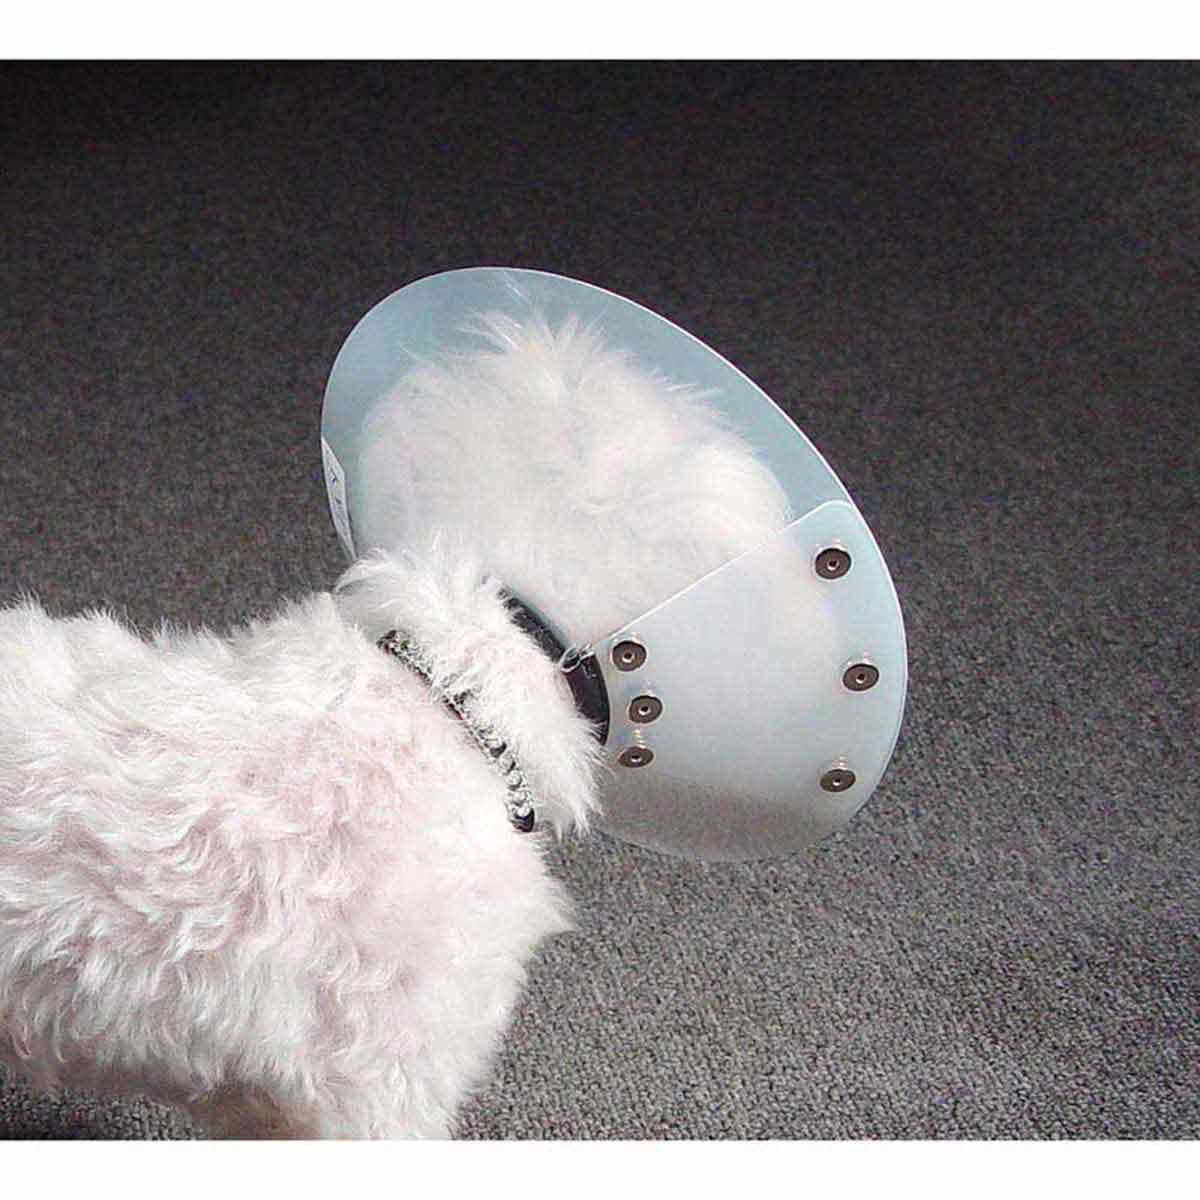 Posterior View of KVP Saf-T-Shield Elizabethan Collar with 6-8.25 inch Opening